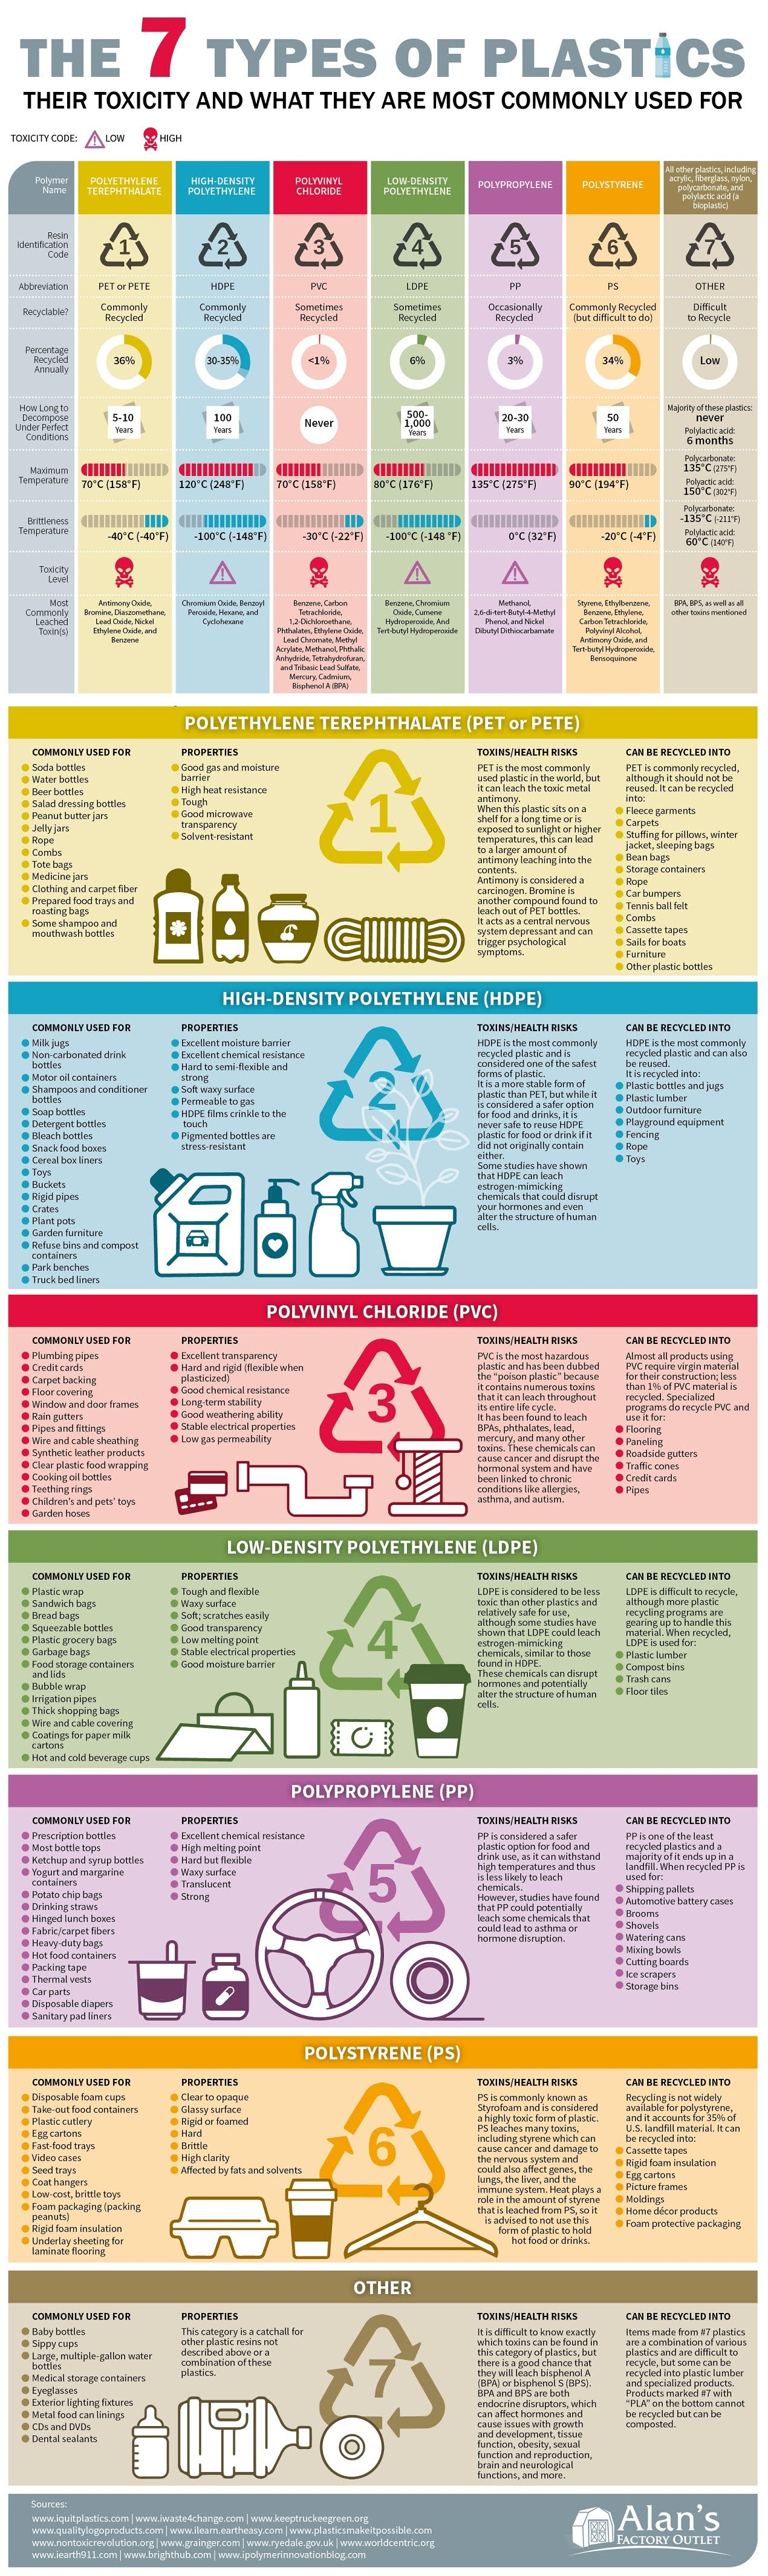 The 7 Types of Plastics: Their Toxicity and What They are Most Commonly Used For #infographic